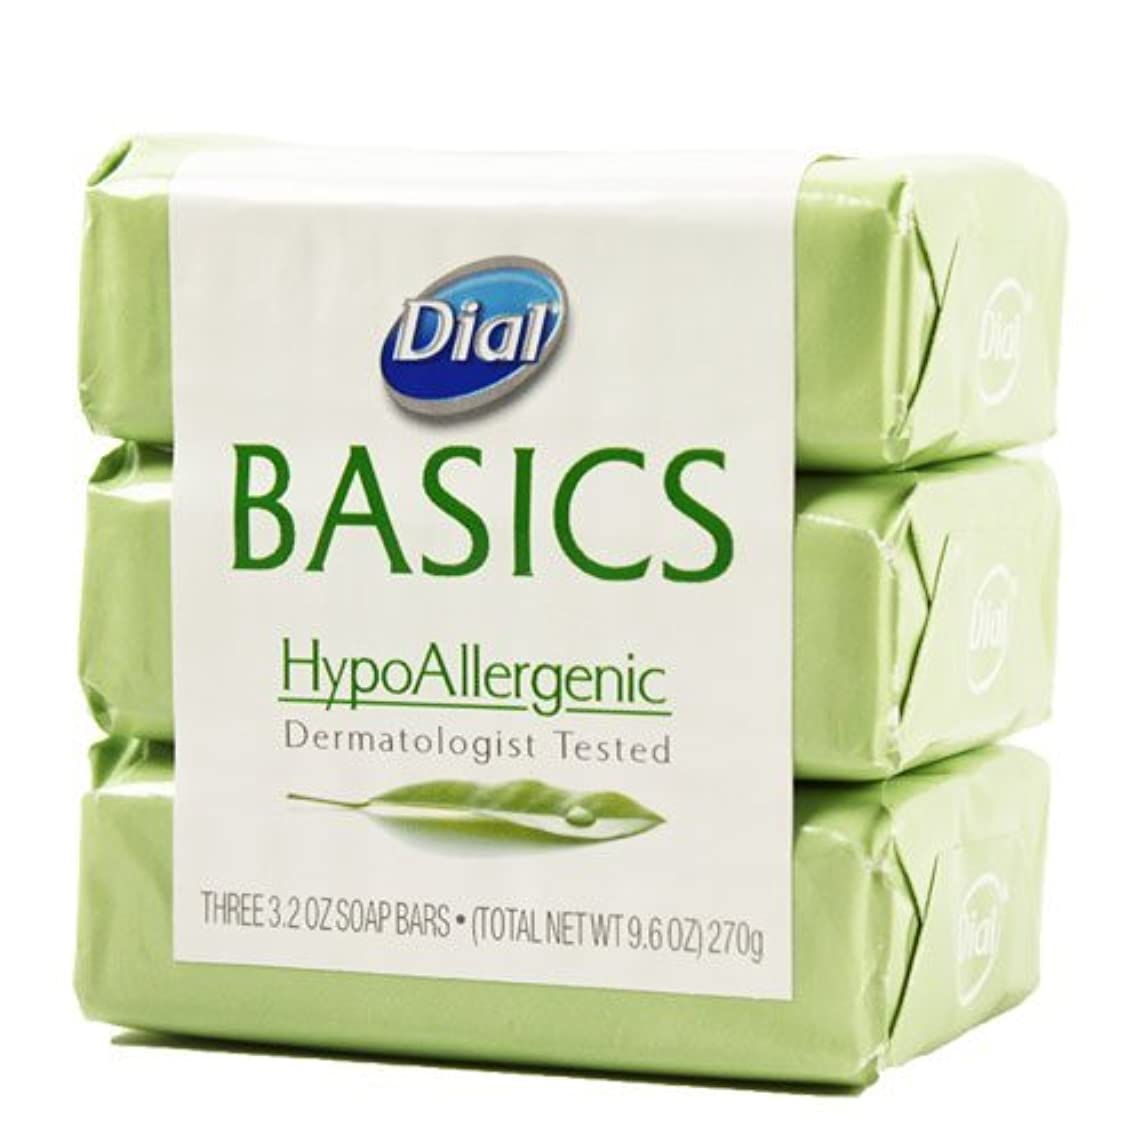 Dial Basics HypoAllergenic Dermatologist Tested Bar Soap, 3.2 oz (18 Bars) by Basics